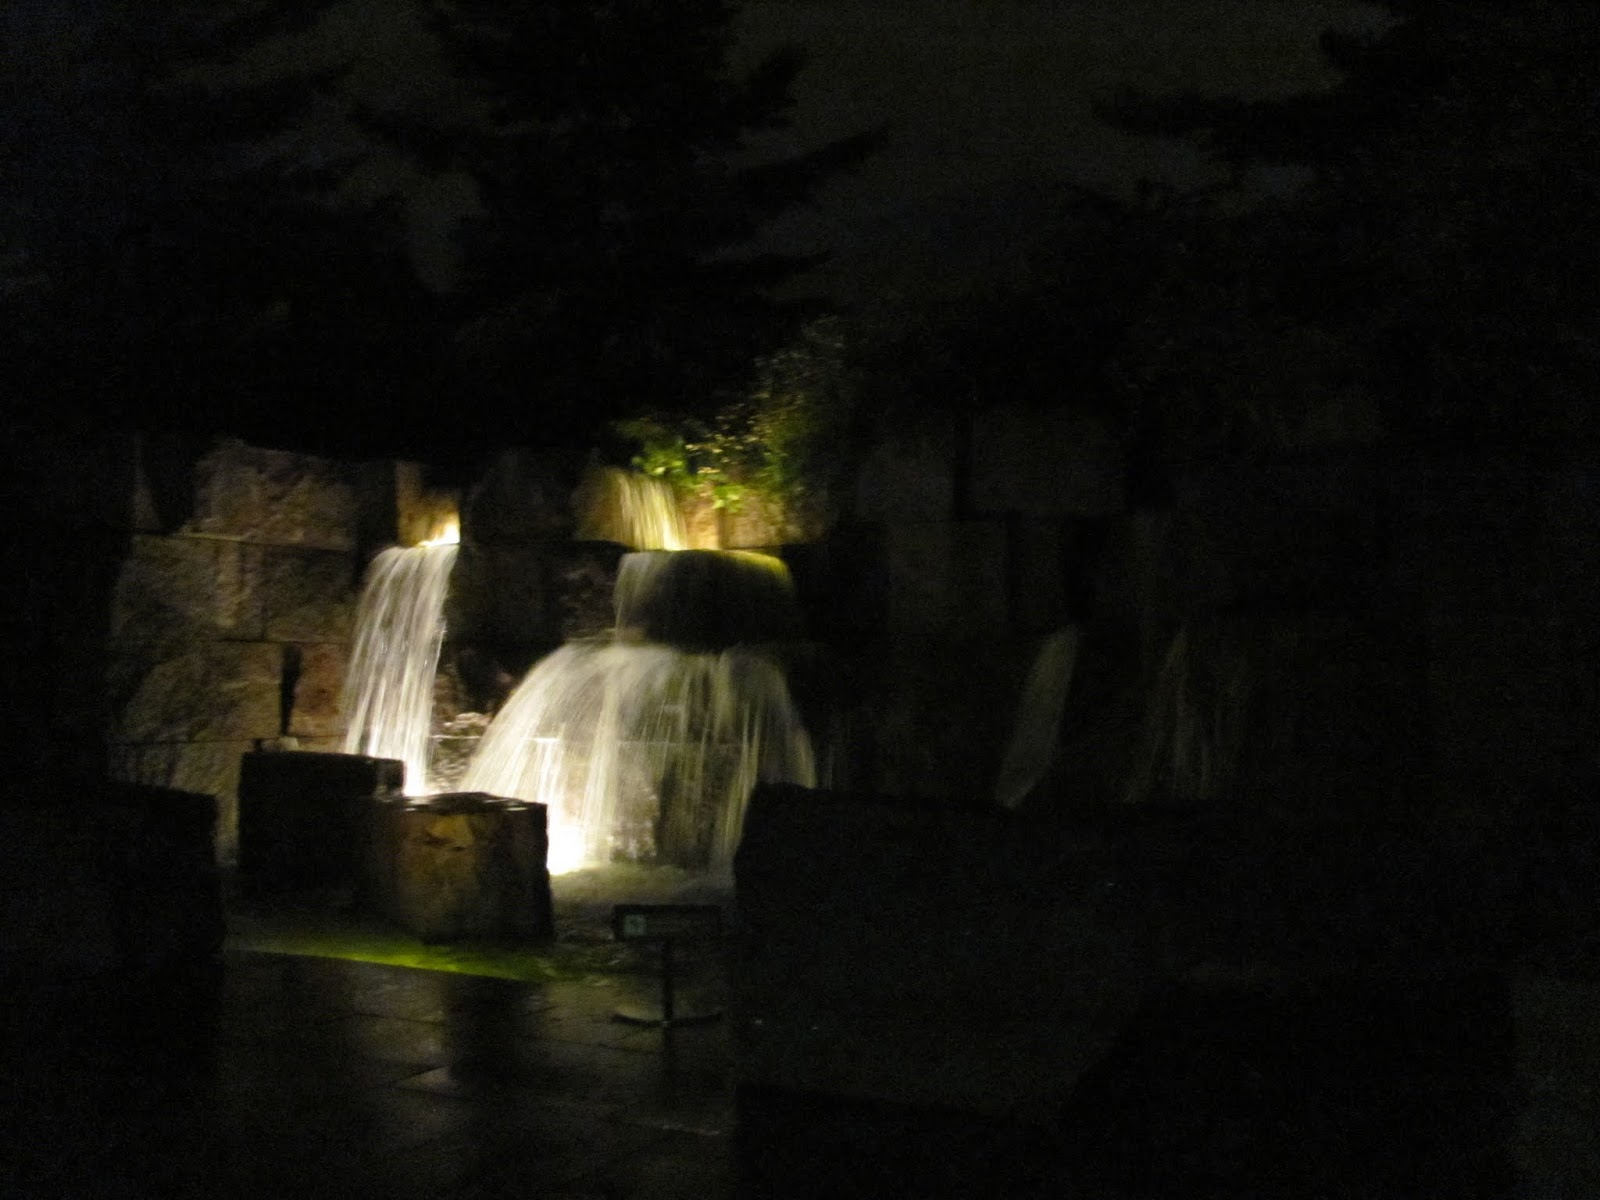 Nighttime shot of a lit fountain at the FDR Memorial in Washington, DC